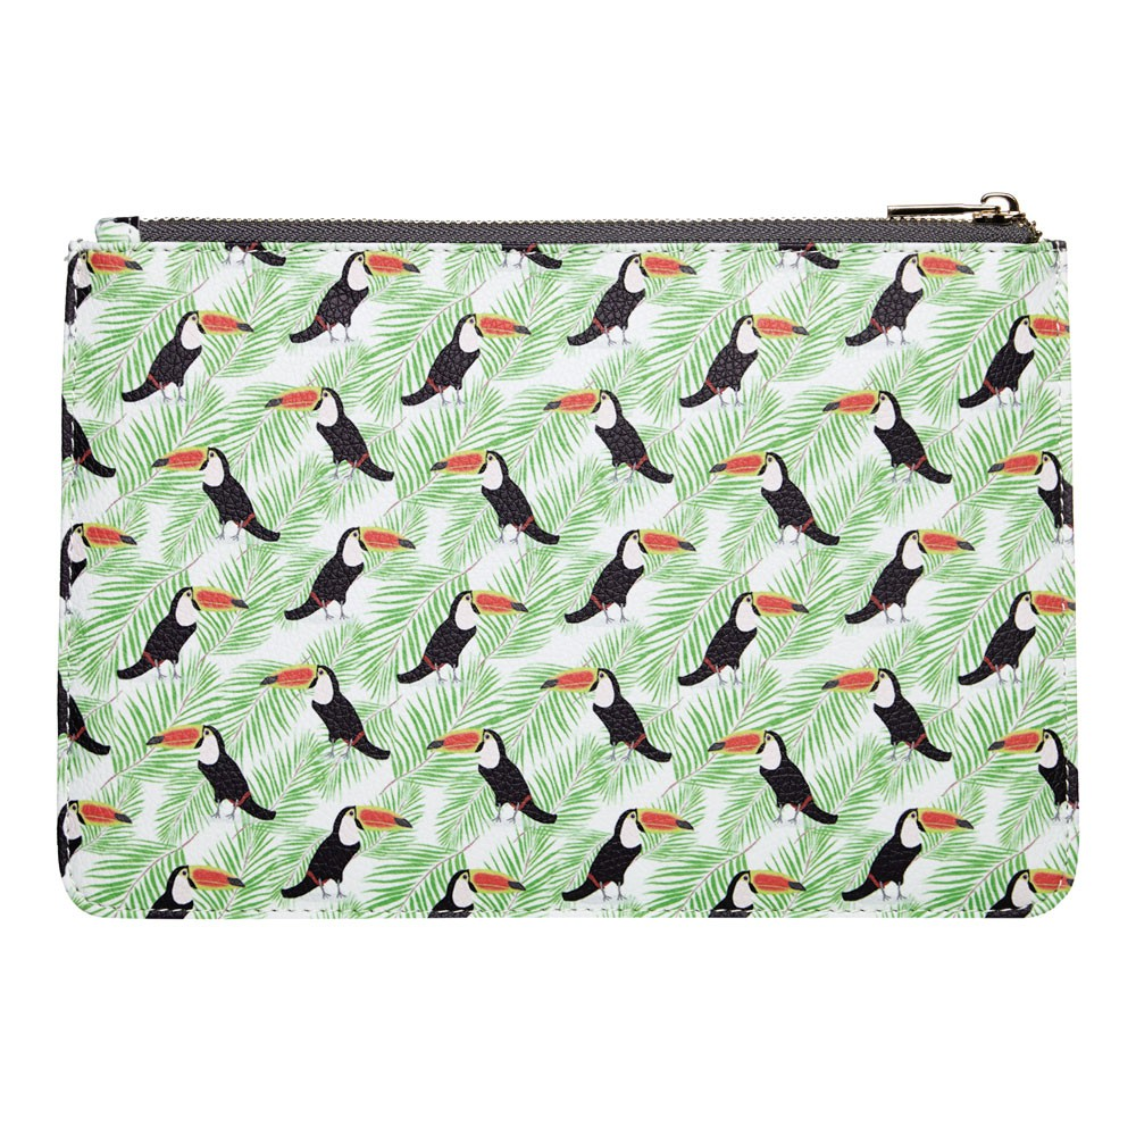 DESIGNER TOUCAN & PALM CLUTCH BAG